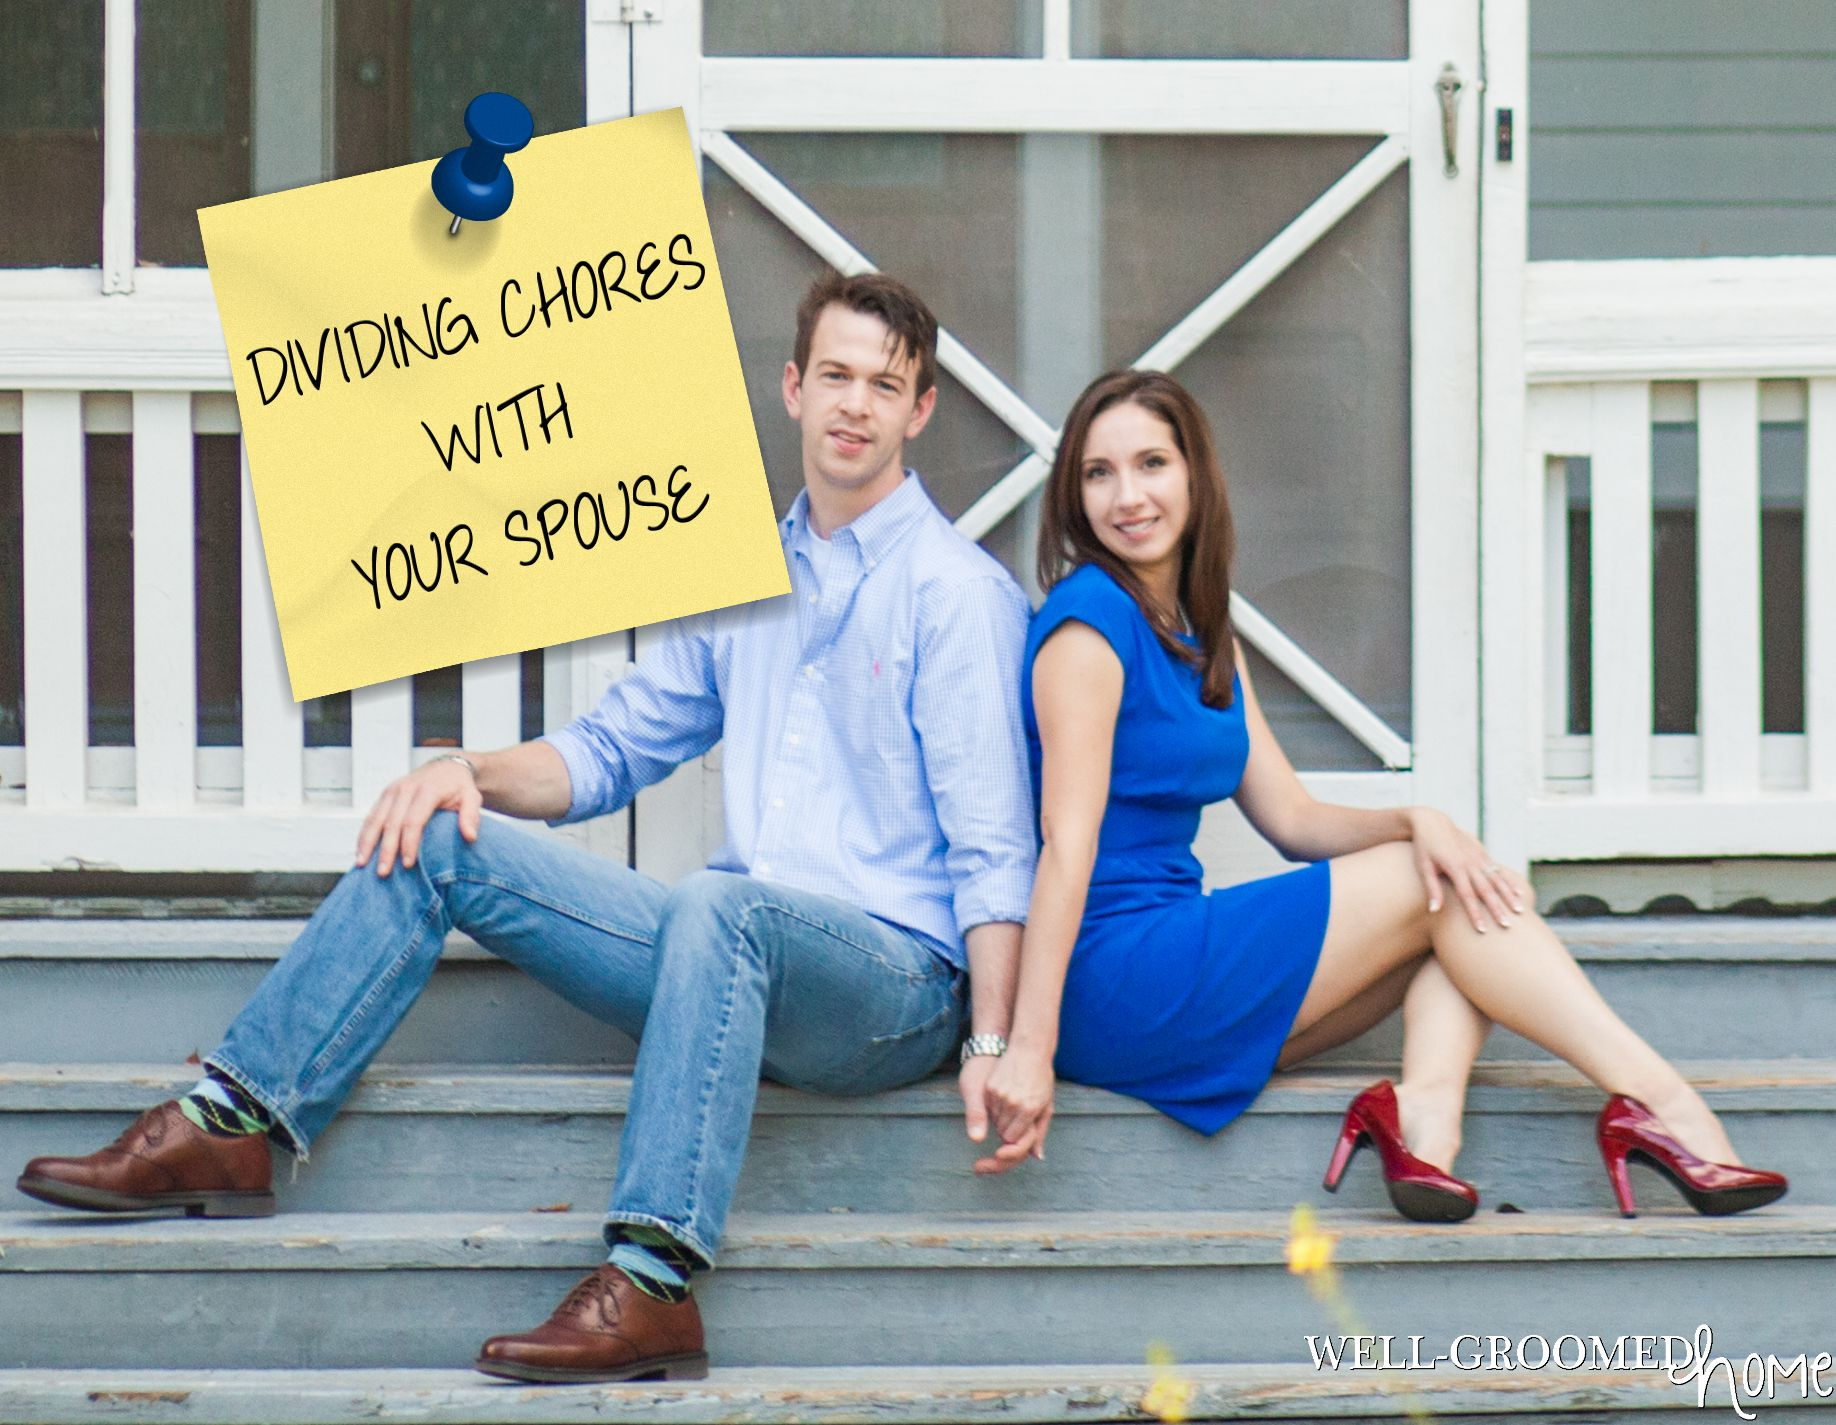 DIVIDING CHORES WITH YOUR SPOUSE